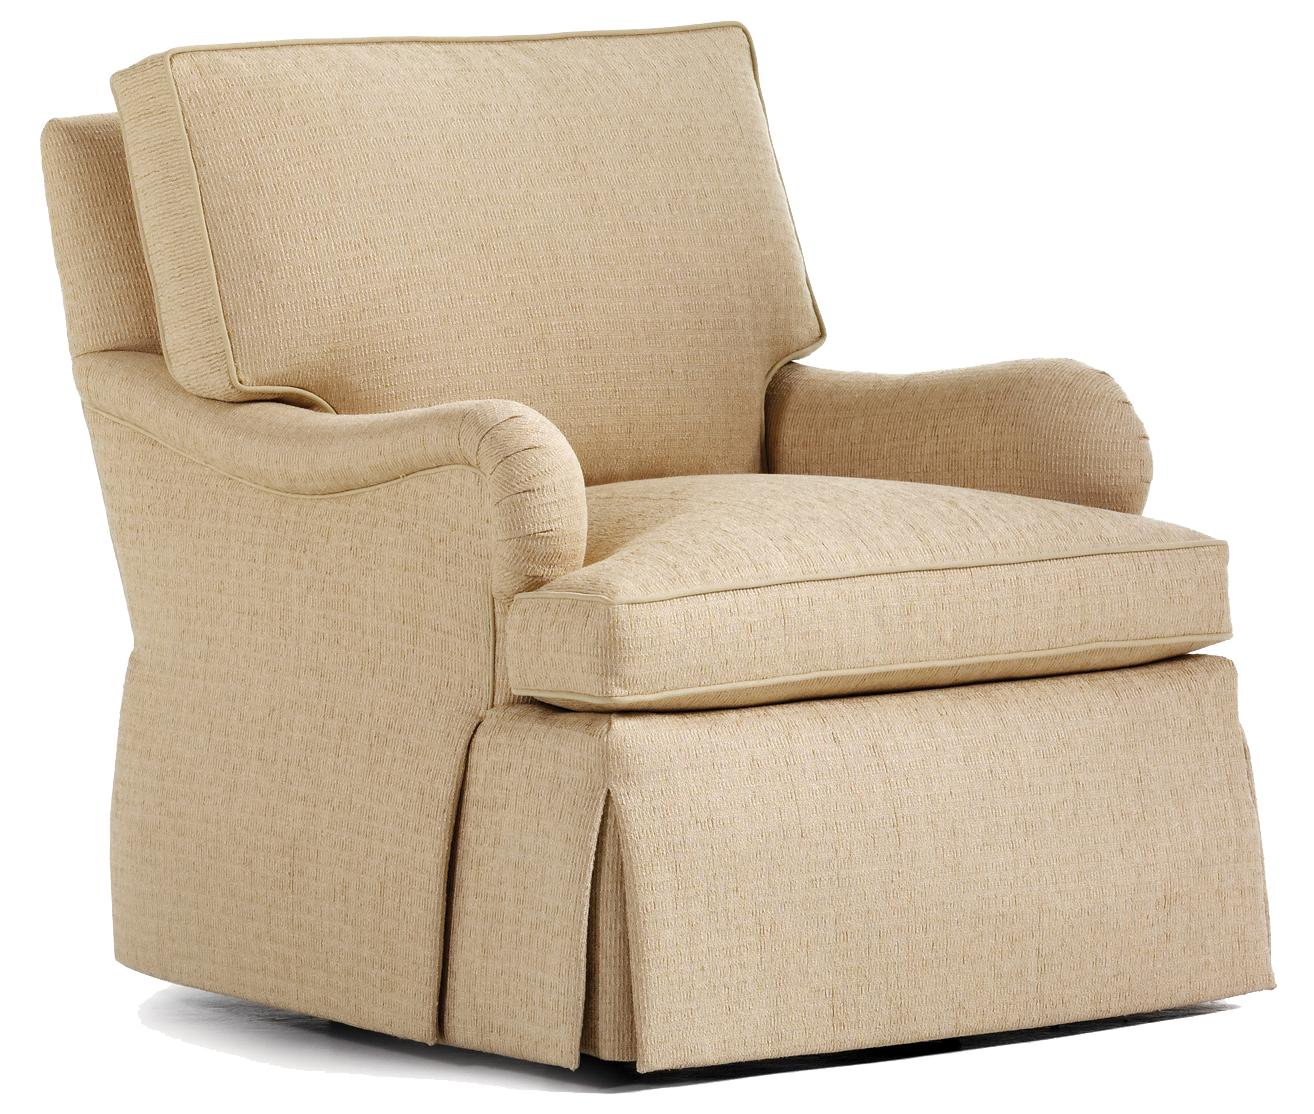 Fine Upholstered Accents Oliver Swivel Rocker    by Jessica Charles at Alison Craig Home Furnishings